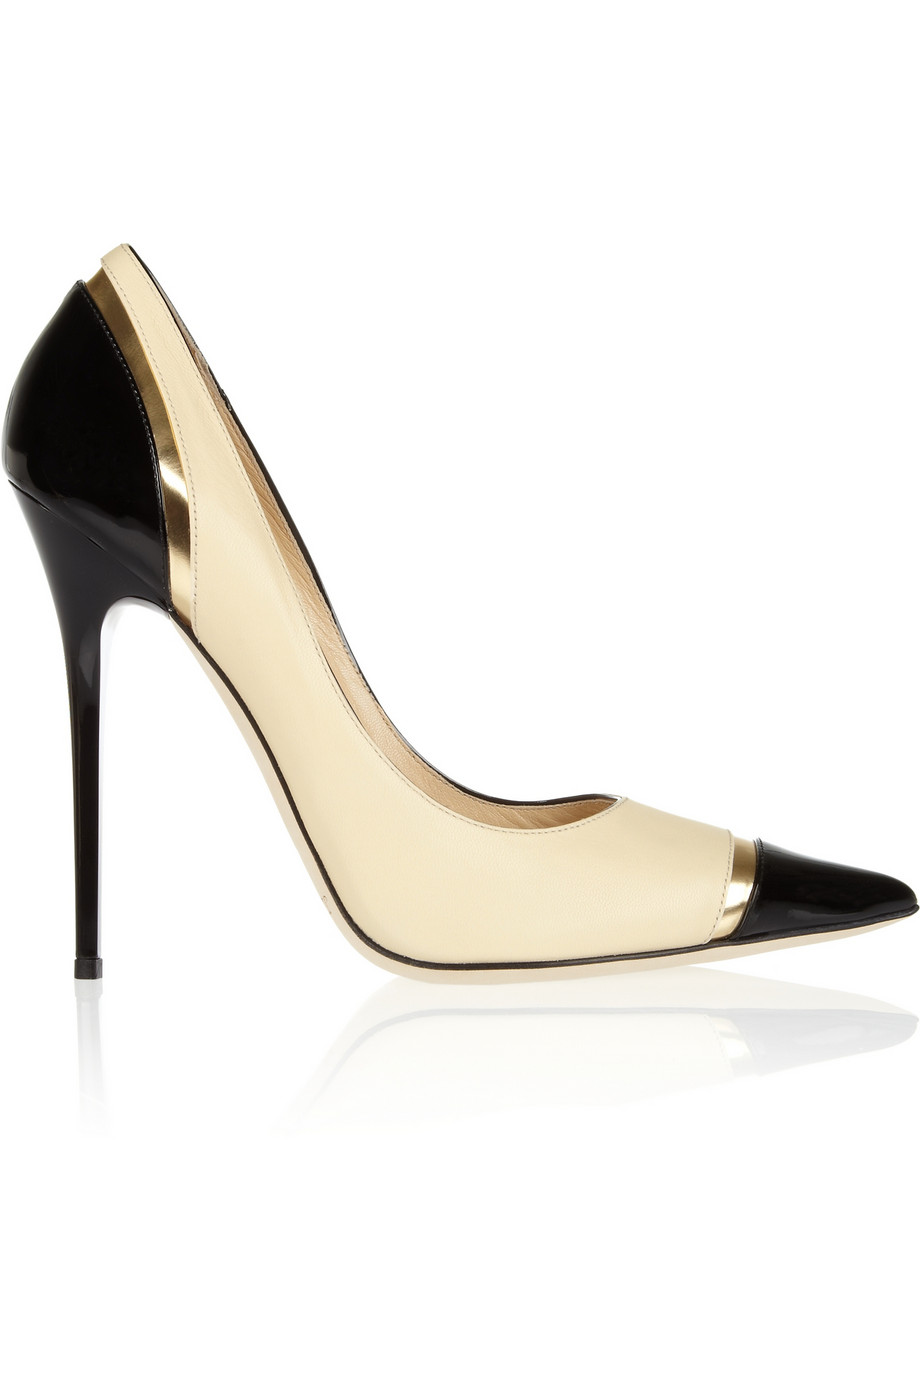 Limit tri-tone leather pumps | Jimmy Choo | 30% off | THE OUTNET